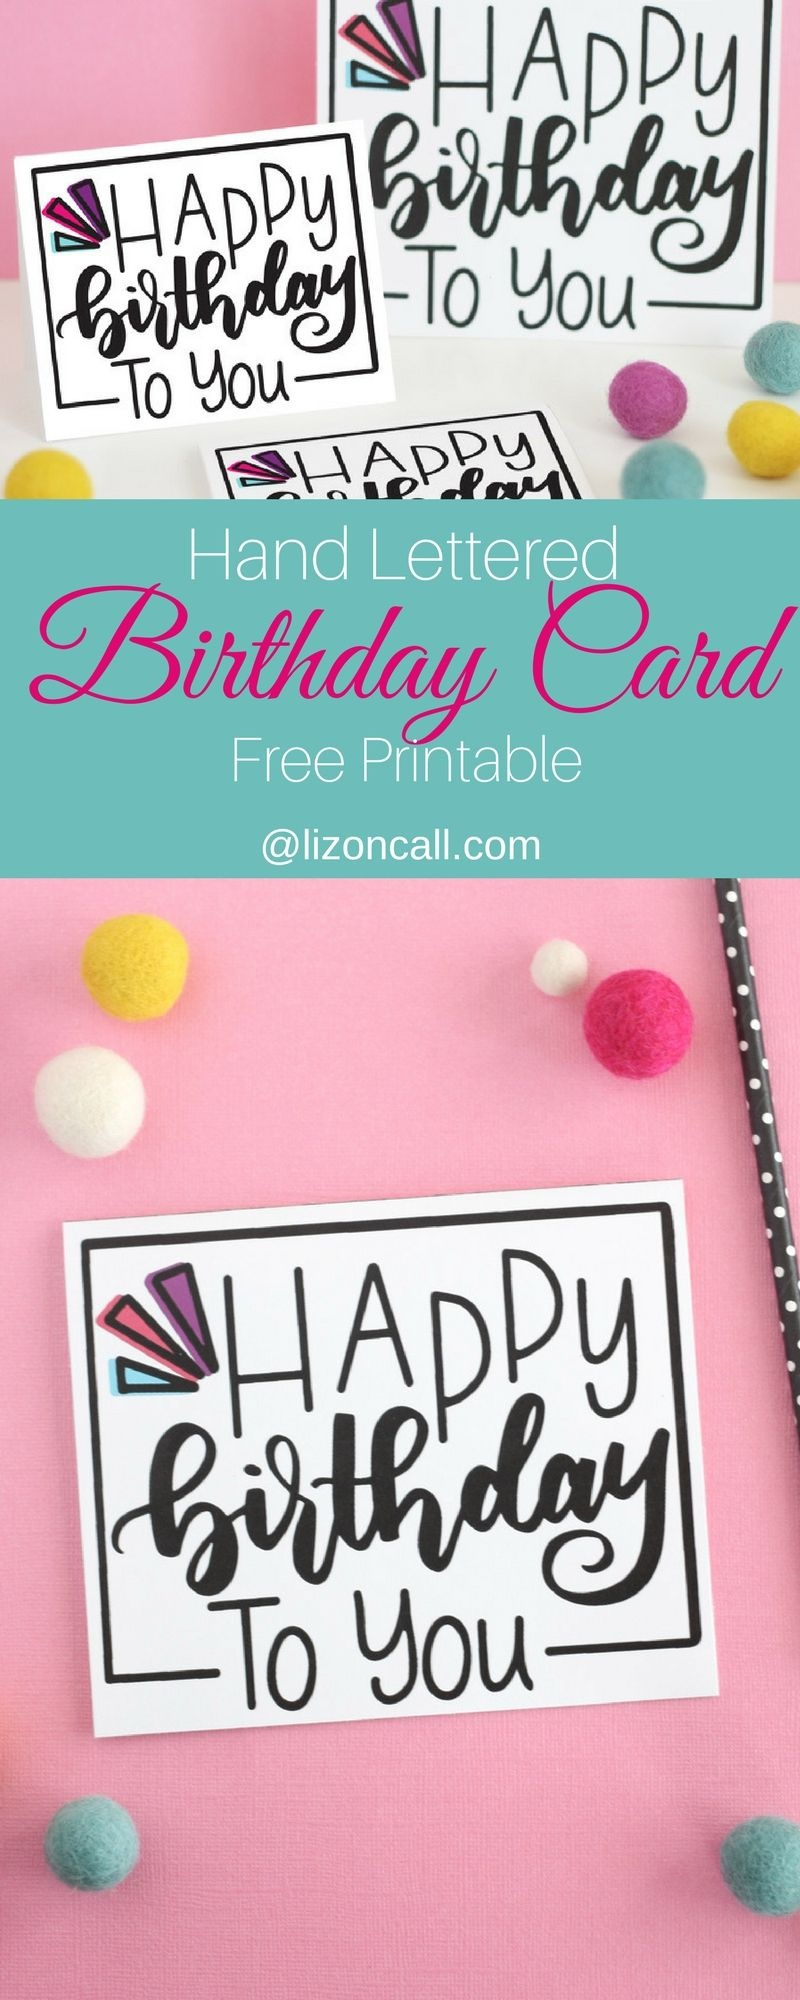 Hand Lettered Free Printable Birthday Card | Lettering | Free - Free Printable Birthday Cards For Your Best Friend